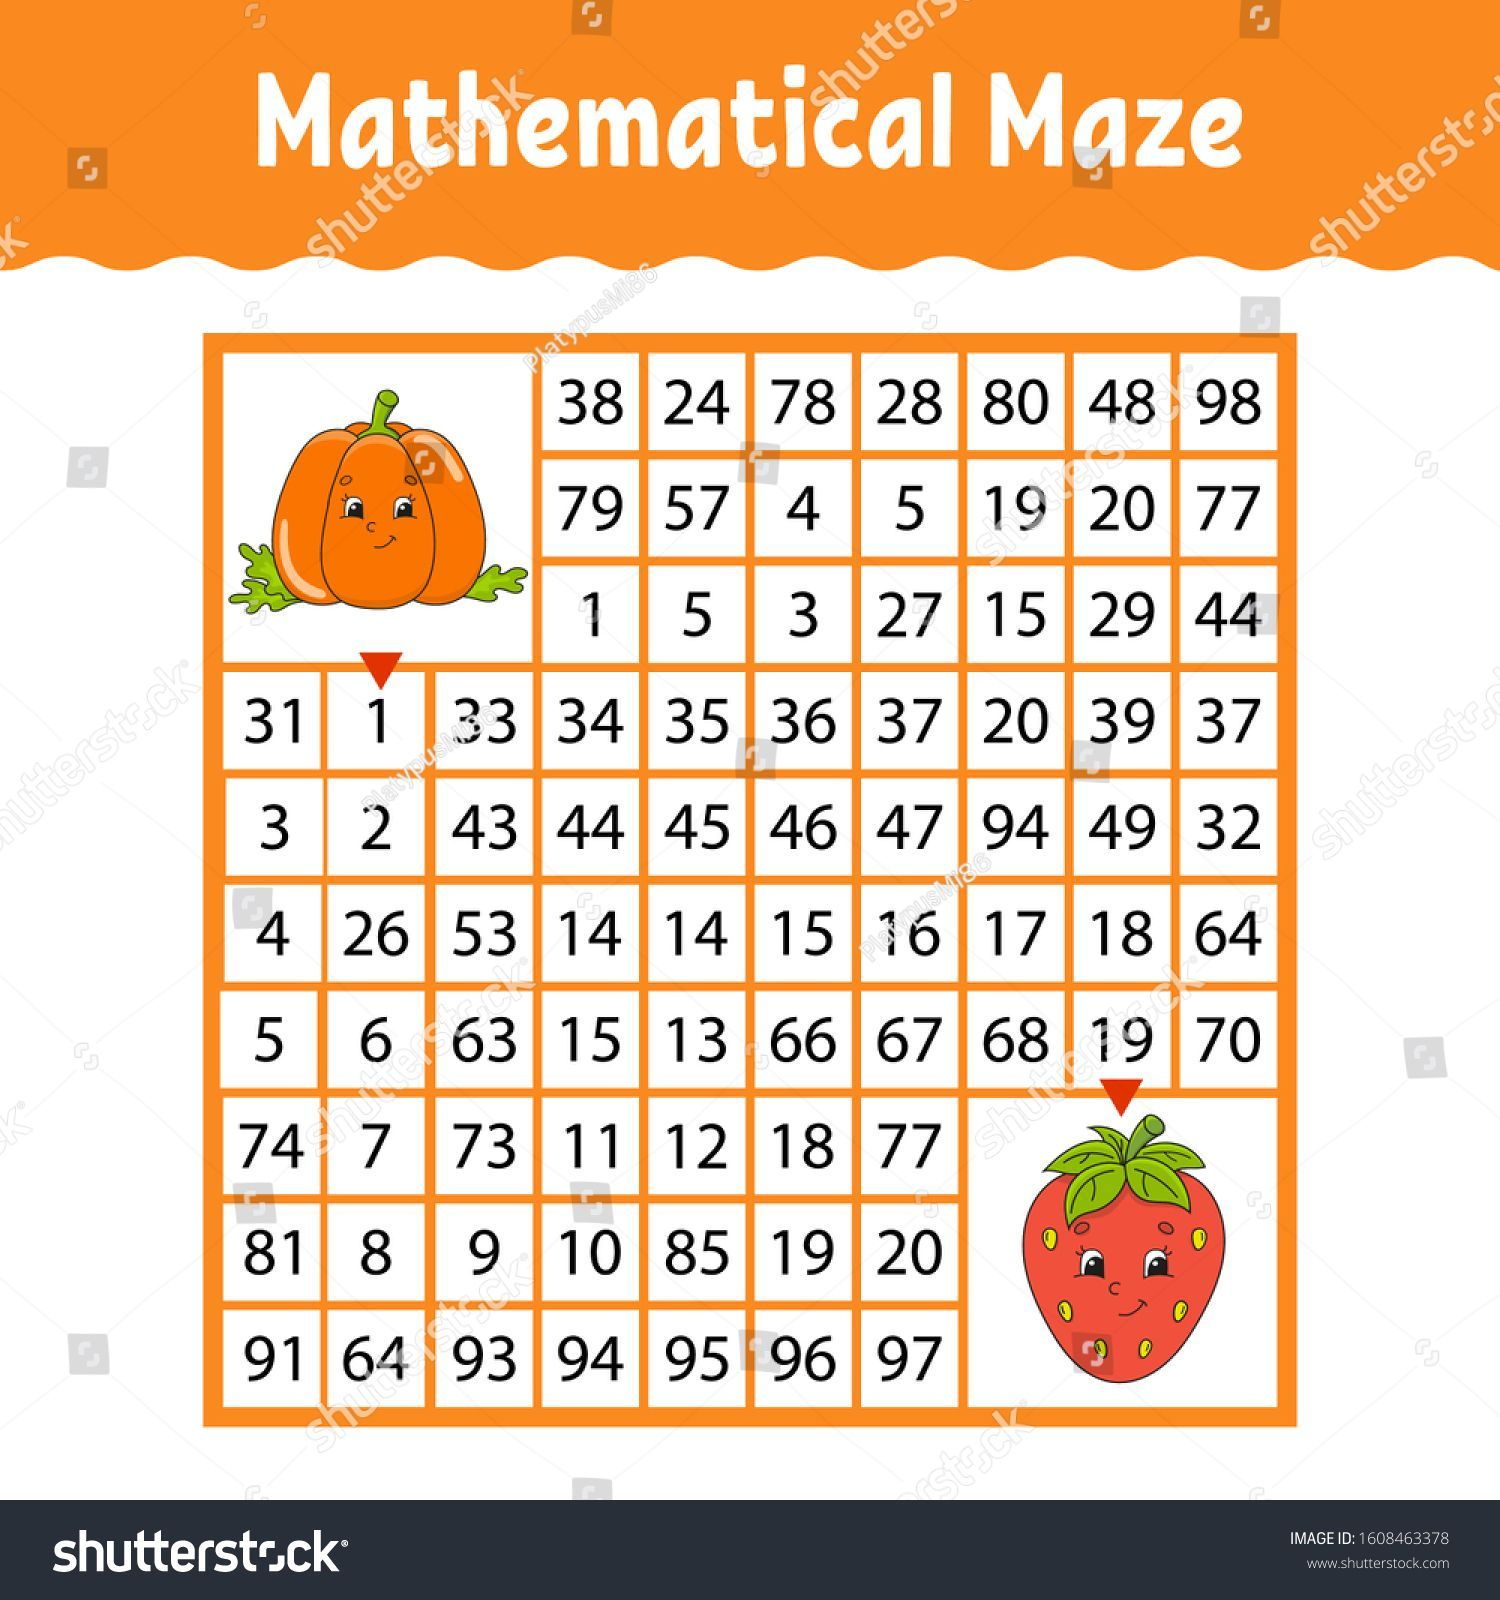 Vegetable pumpkin strawberry Mathematical square maze Game for kids Number labyrinth Education worksheet Activity page Puzzle for children Cartoon characters Color vect f...